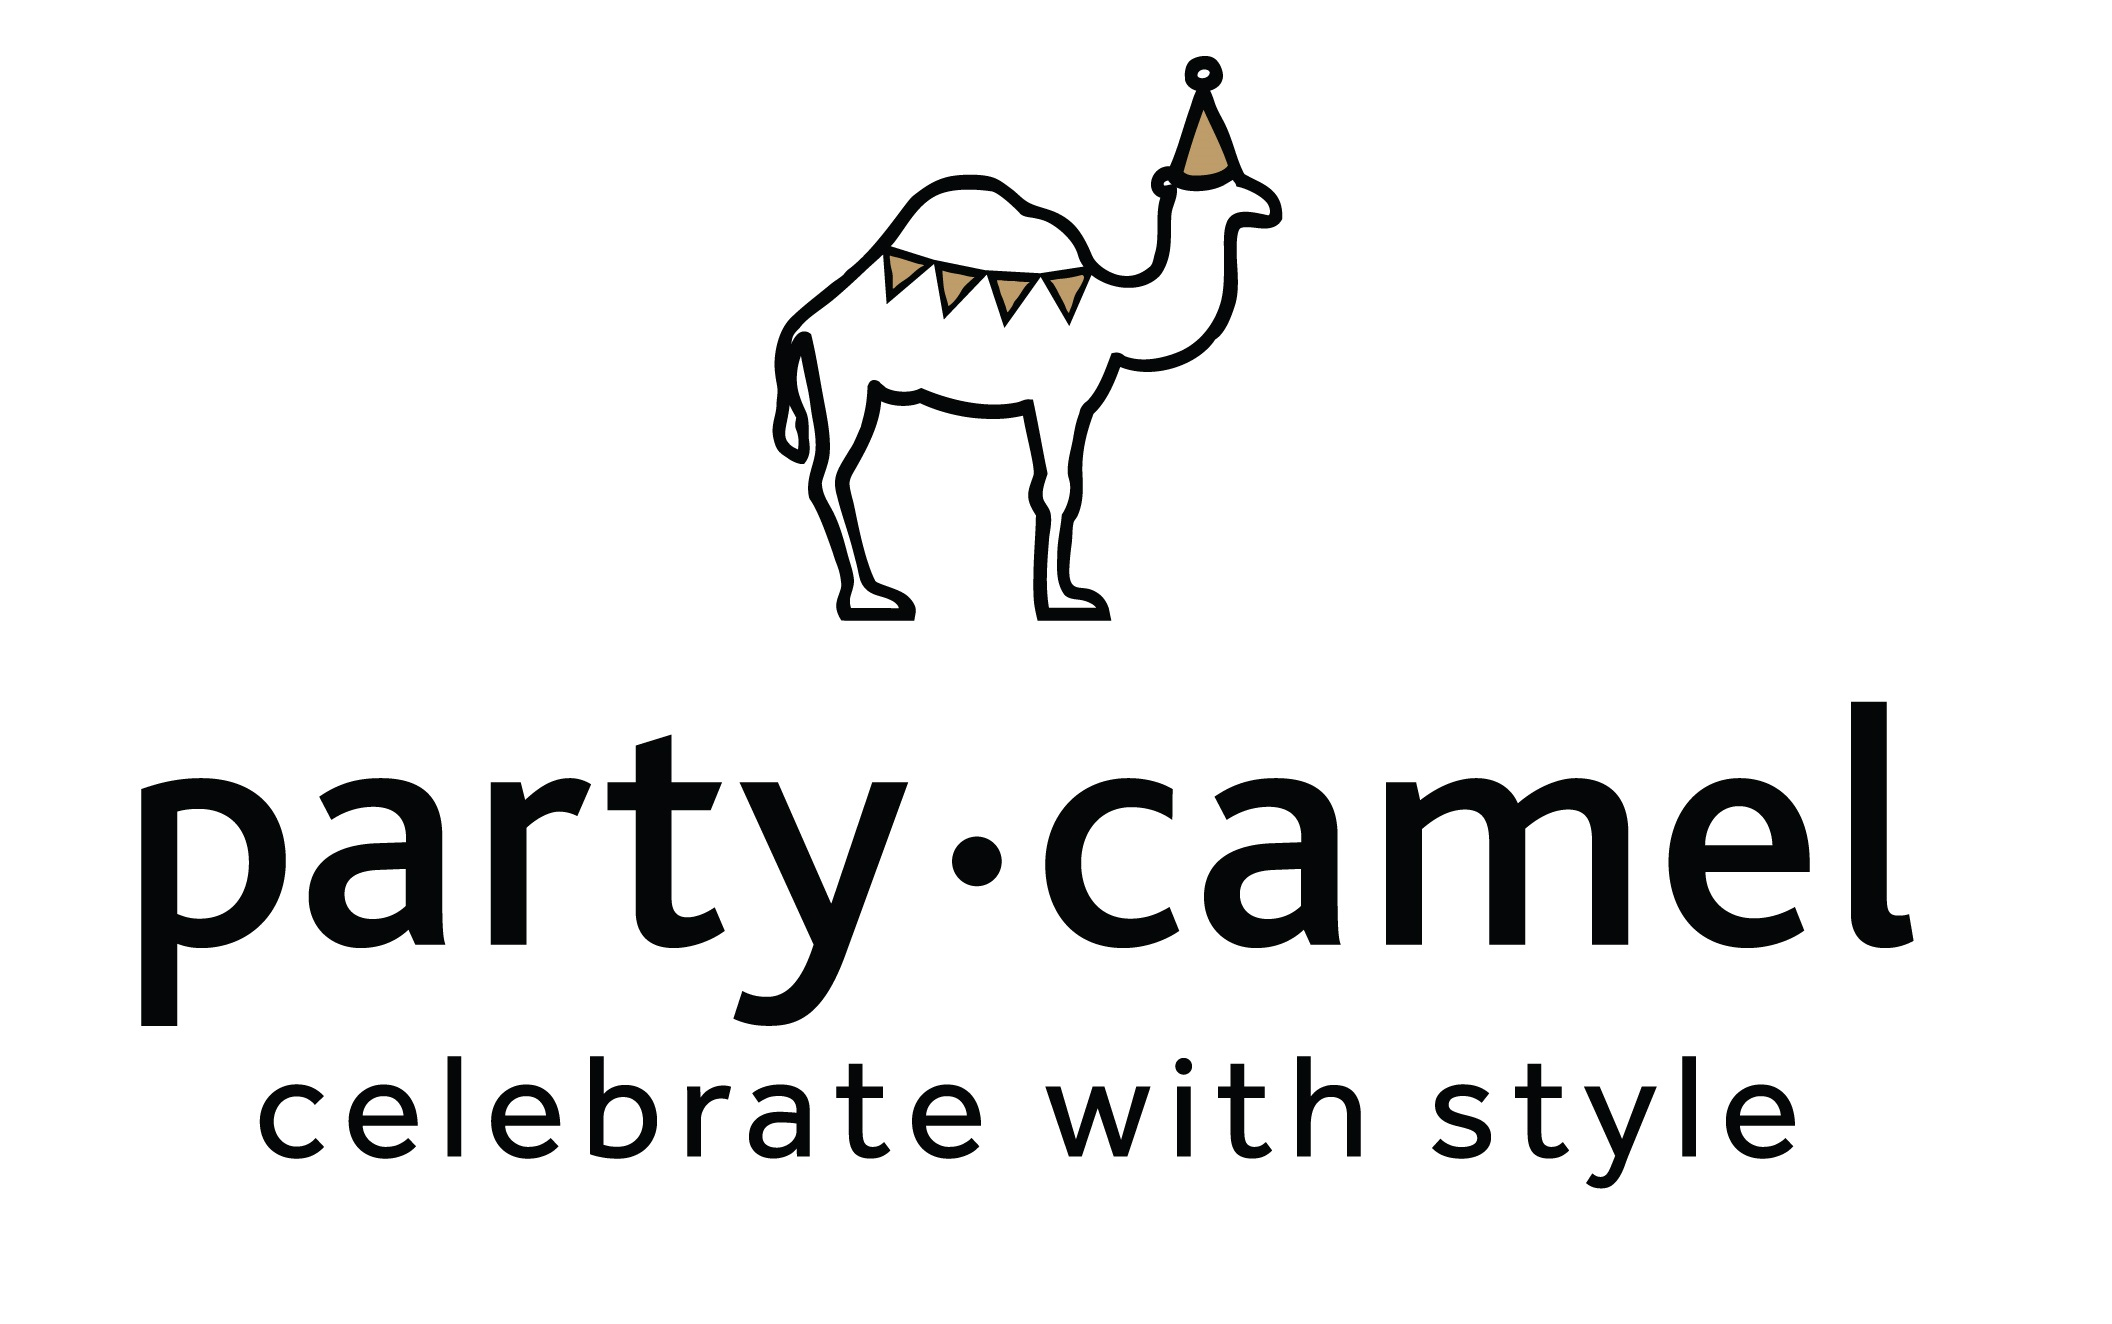 Paperworld Middle East Playworld Party camel logo